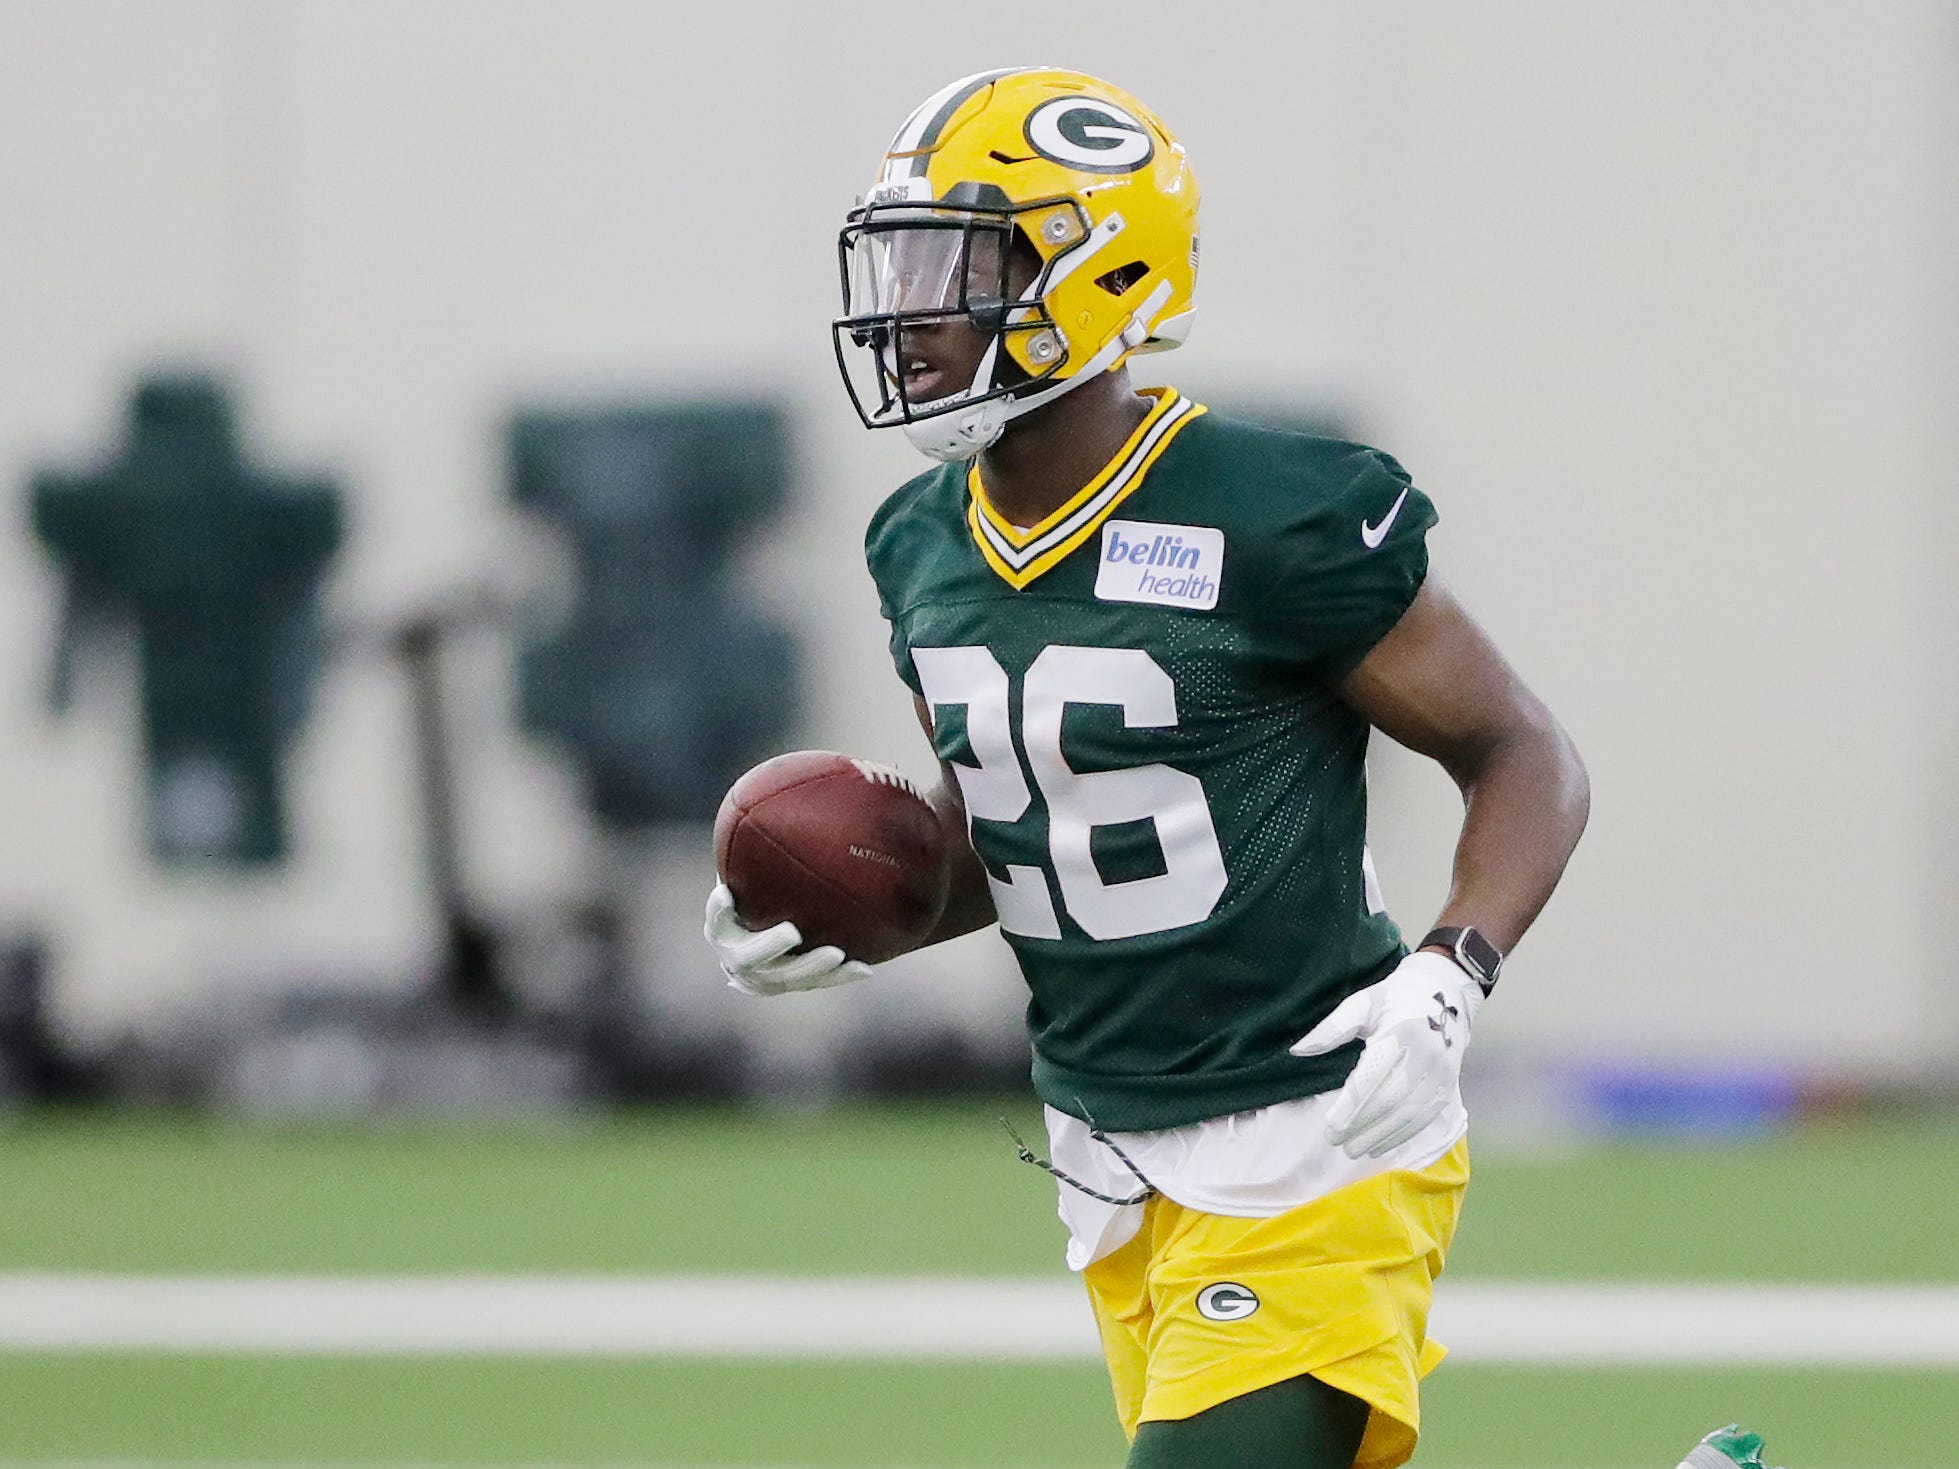 Green Bay Packers safety Darnell Savage (26) during practice at rookie minicamp at the Don Hutson Center on Friday, May 3, 2019 in Ashwaubenon, Wis.Adam Wesley/USA TODAY NETWORK-Wis